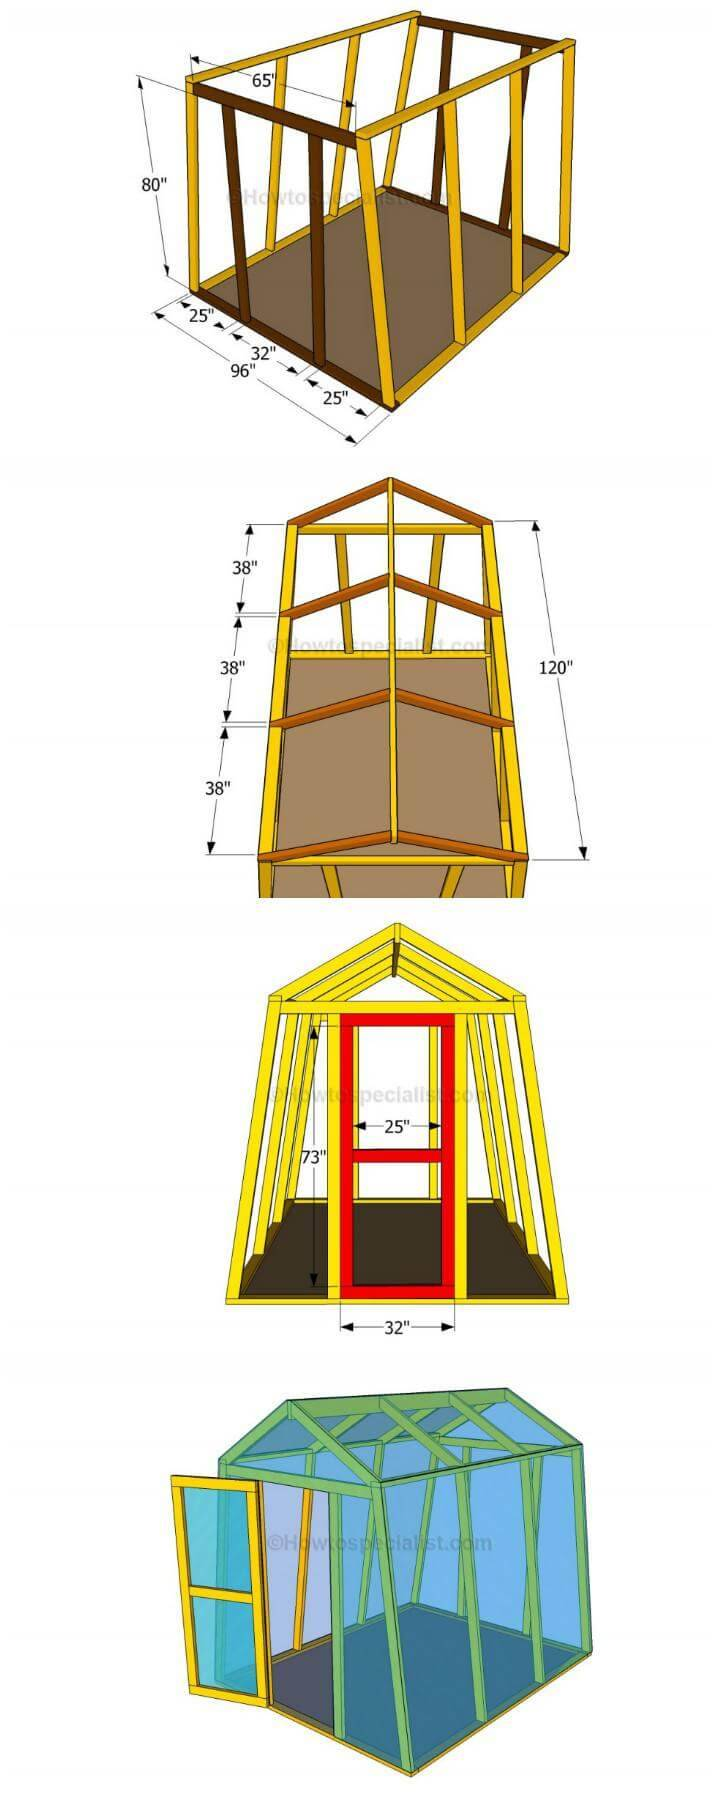 DIY Small Greenhouse Plans Step-by-Step